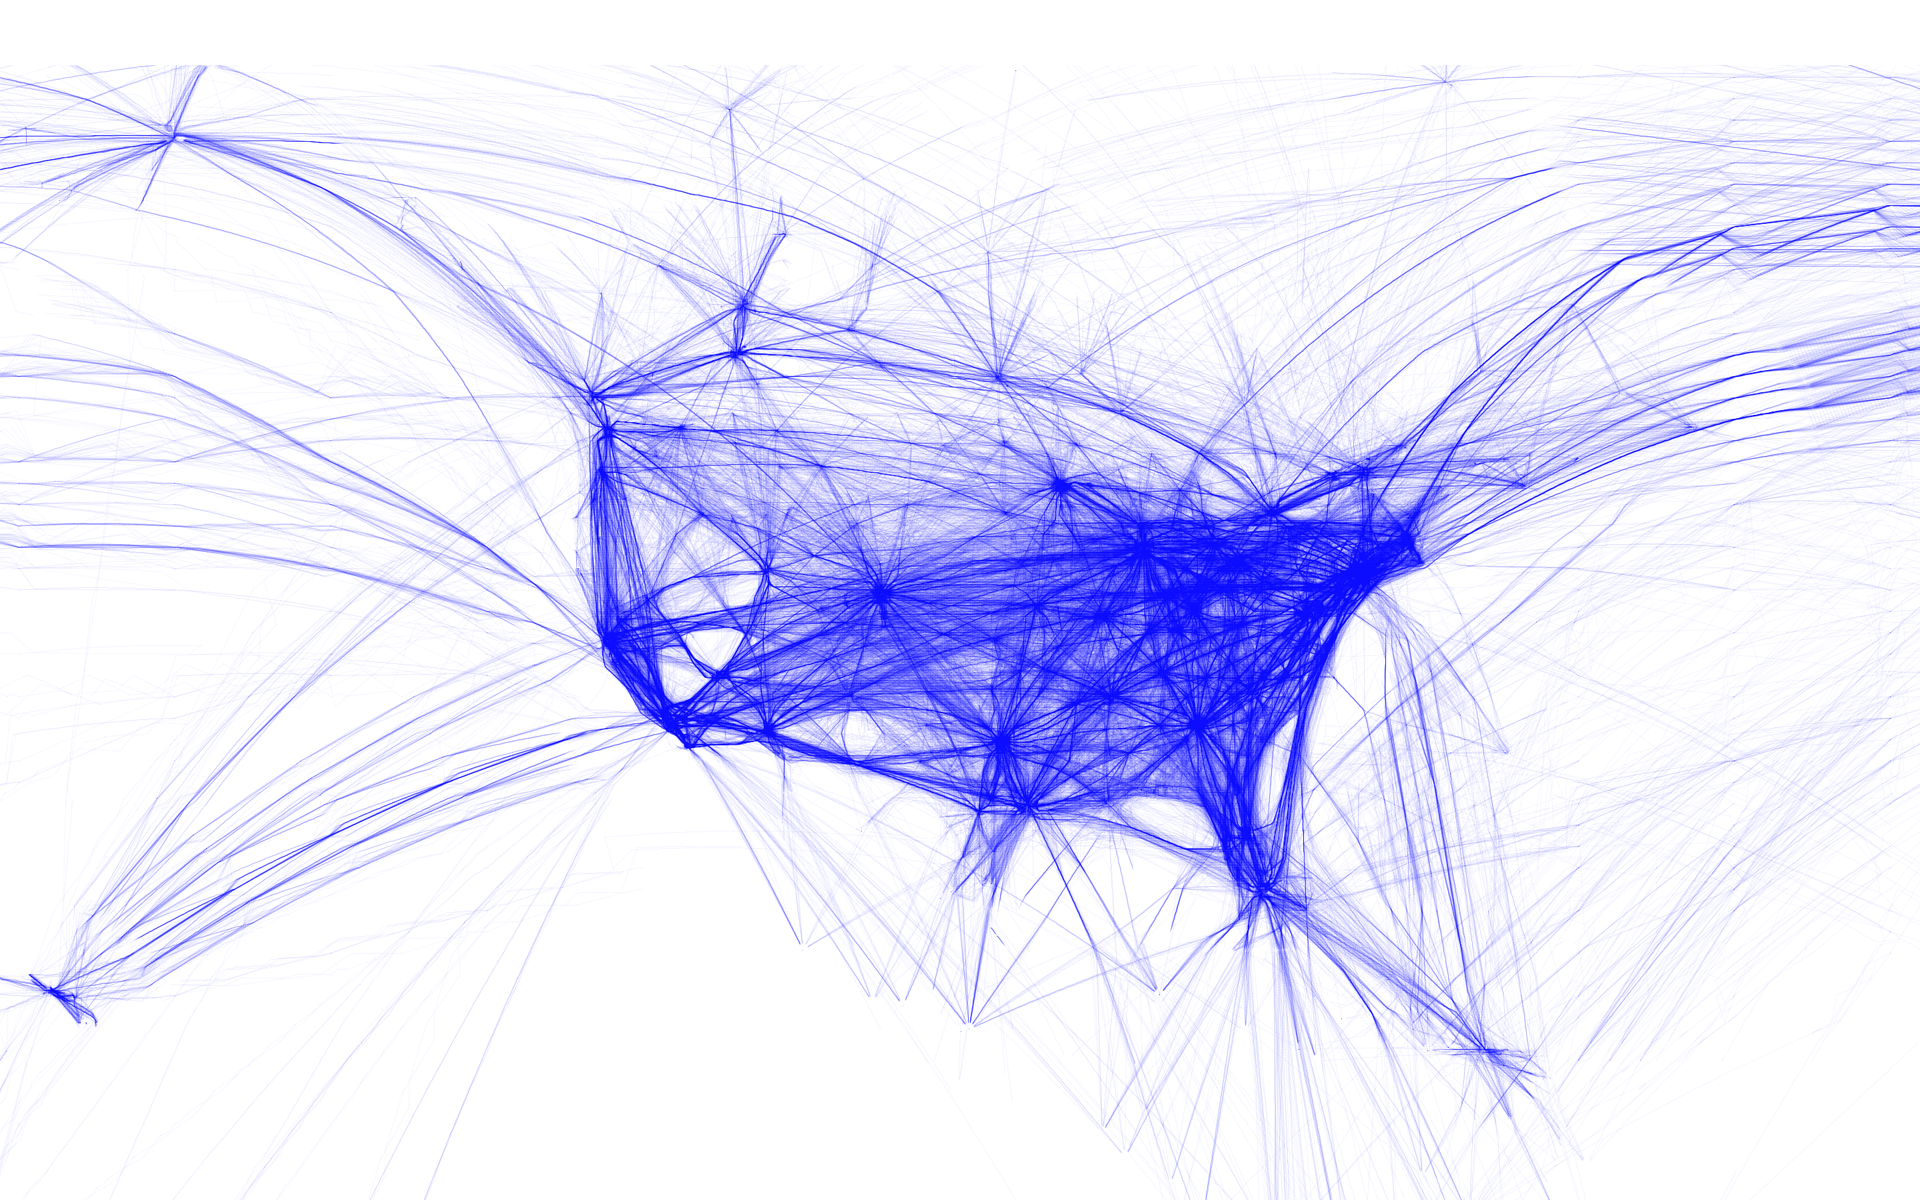 Flight patterns over U.S. [via]